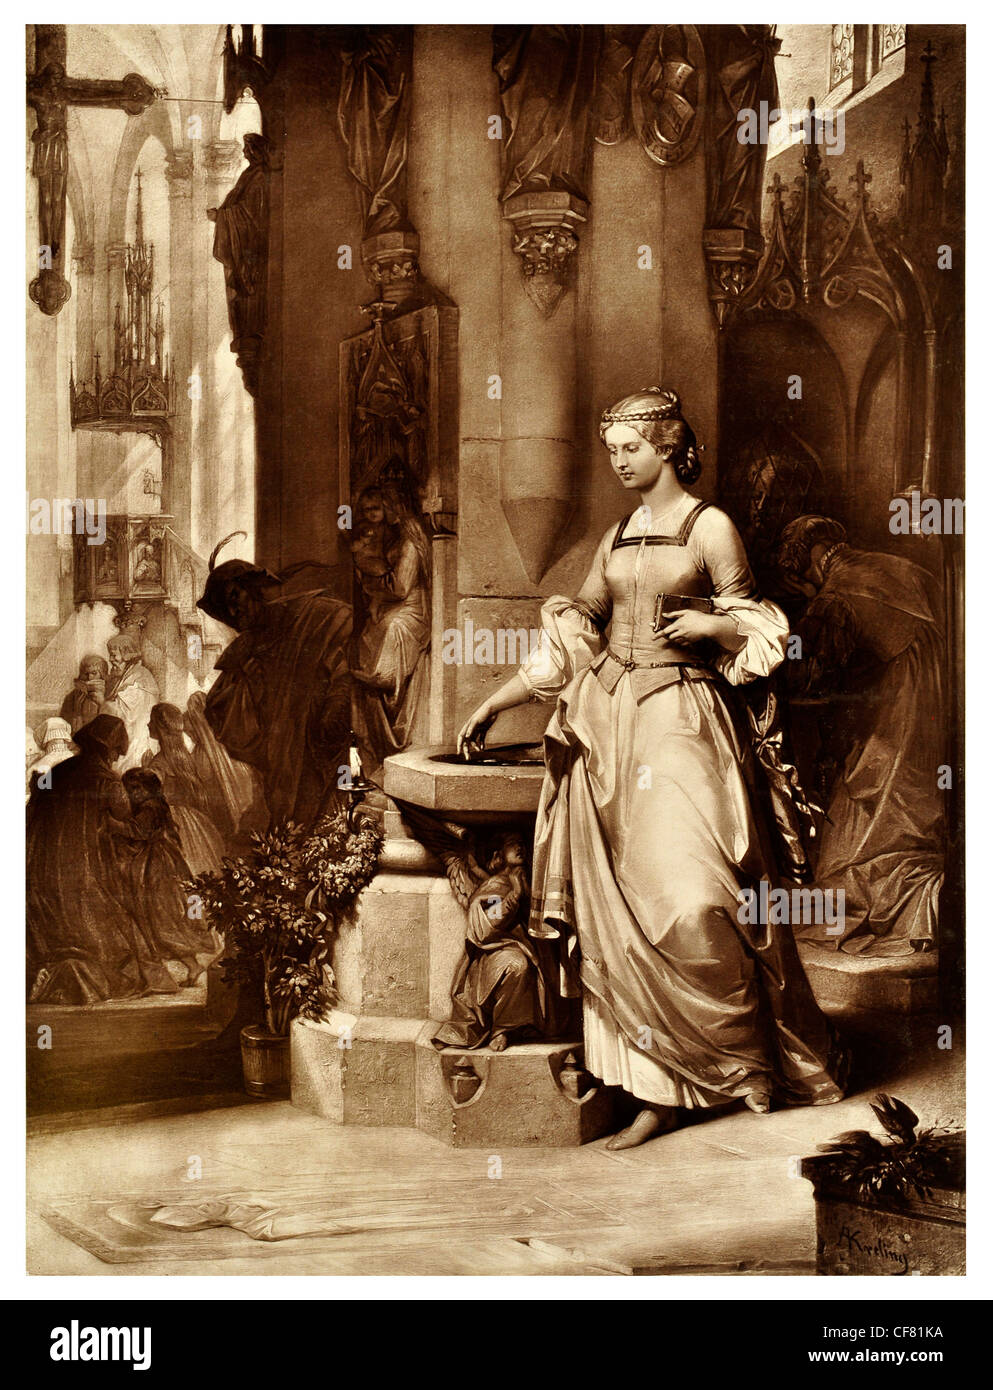 Faust  Johann Wolfgang von Goethe A tragedy 1870 period costume magical magic tale legend myth story drama theatre Stock Photo